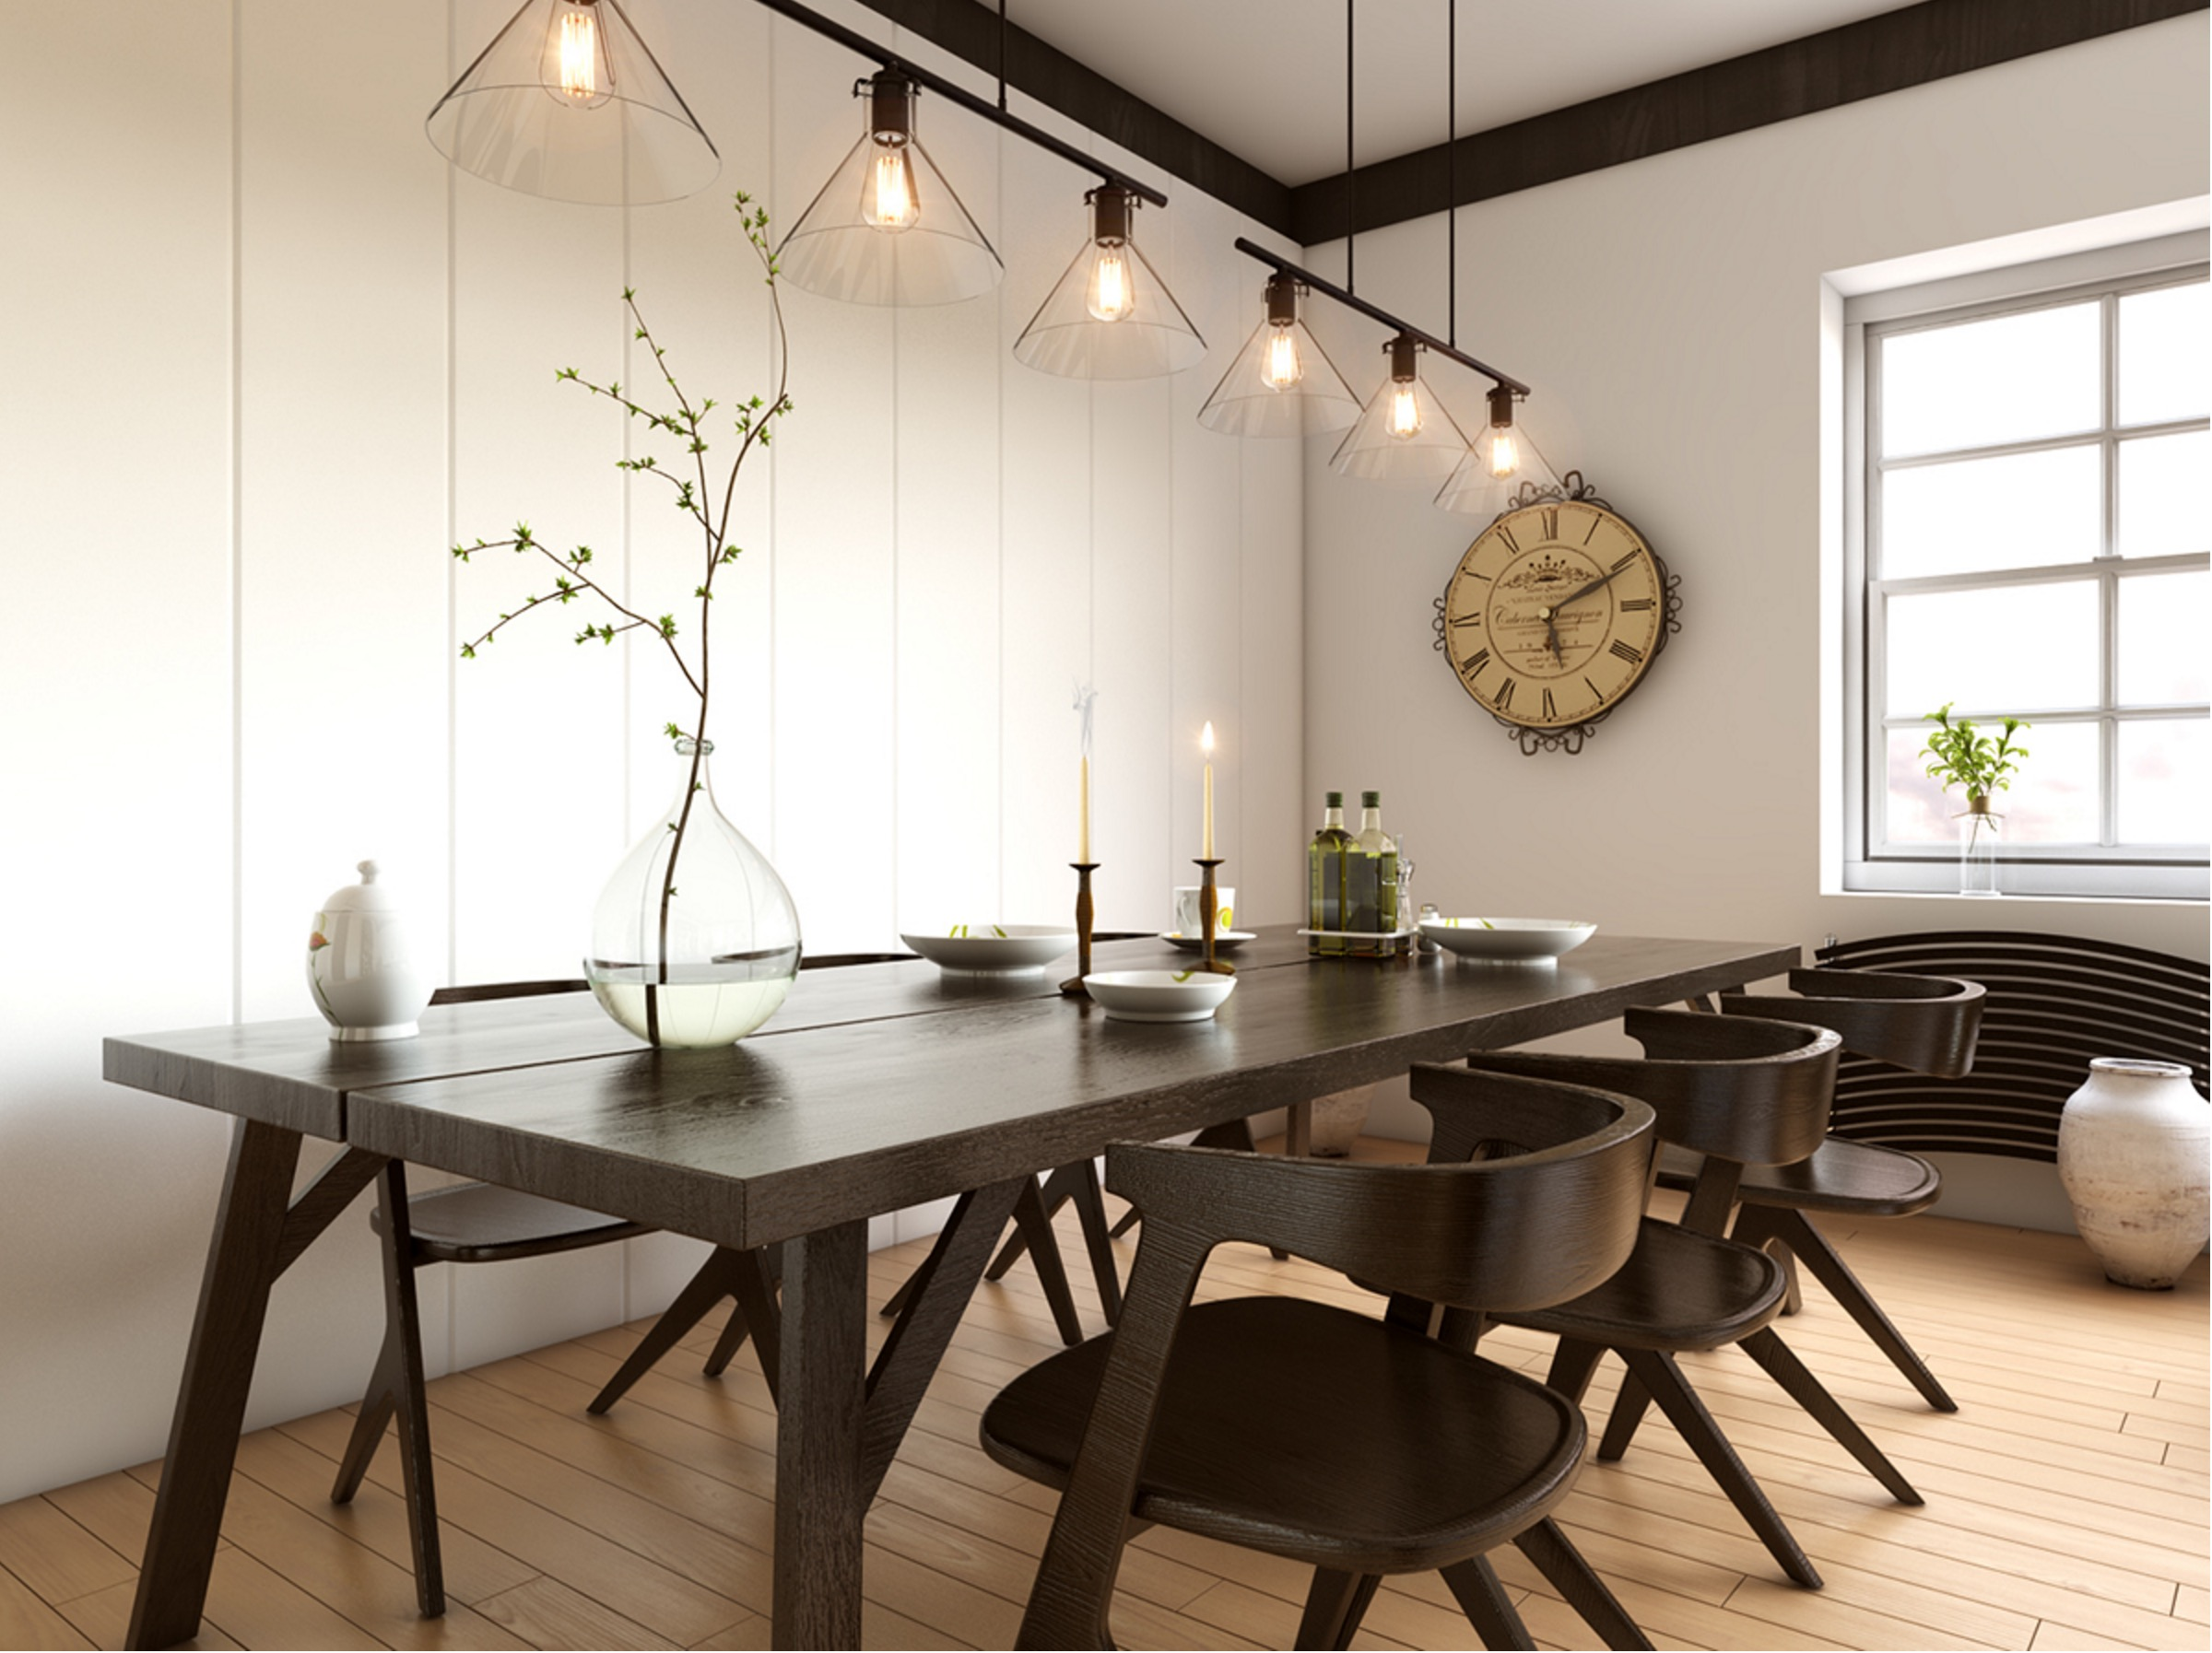 White and dark dining room ideas